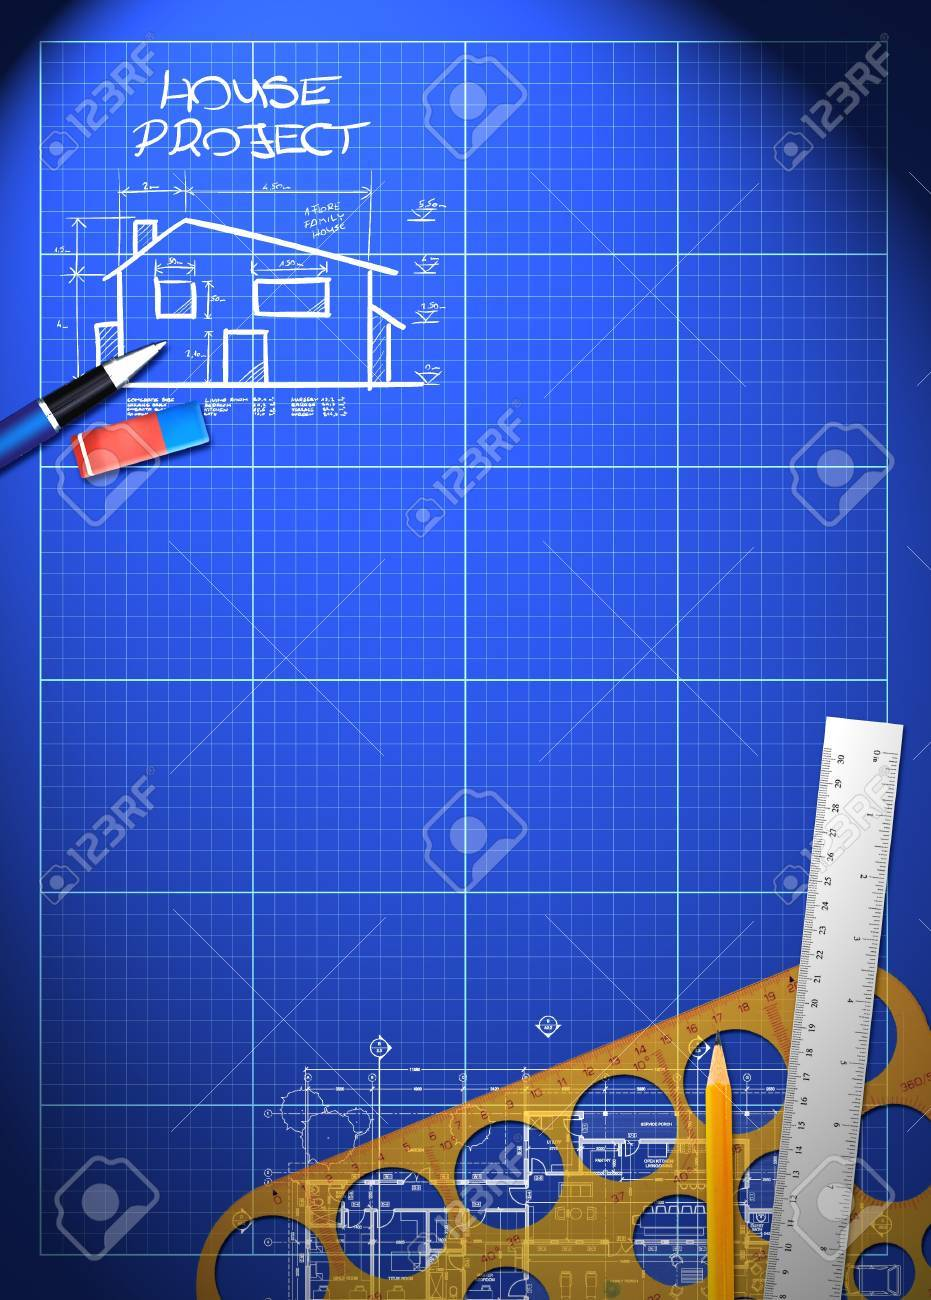 Abstract house blueprint poster background with space stock photo abstract house blueprint poster background with space stock photo 18855545 malvernweather Images